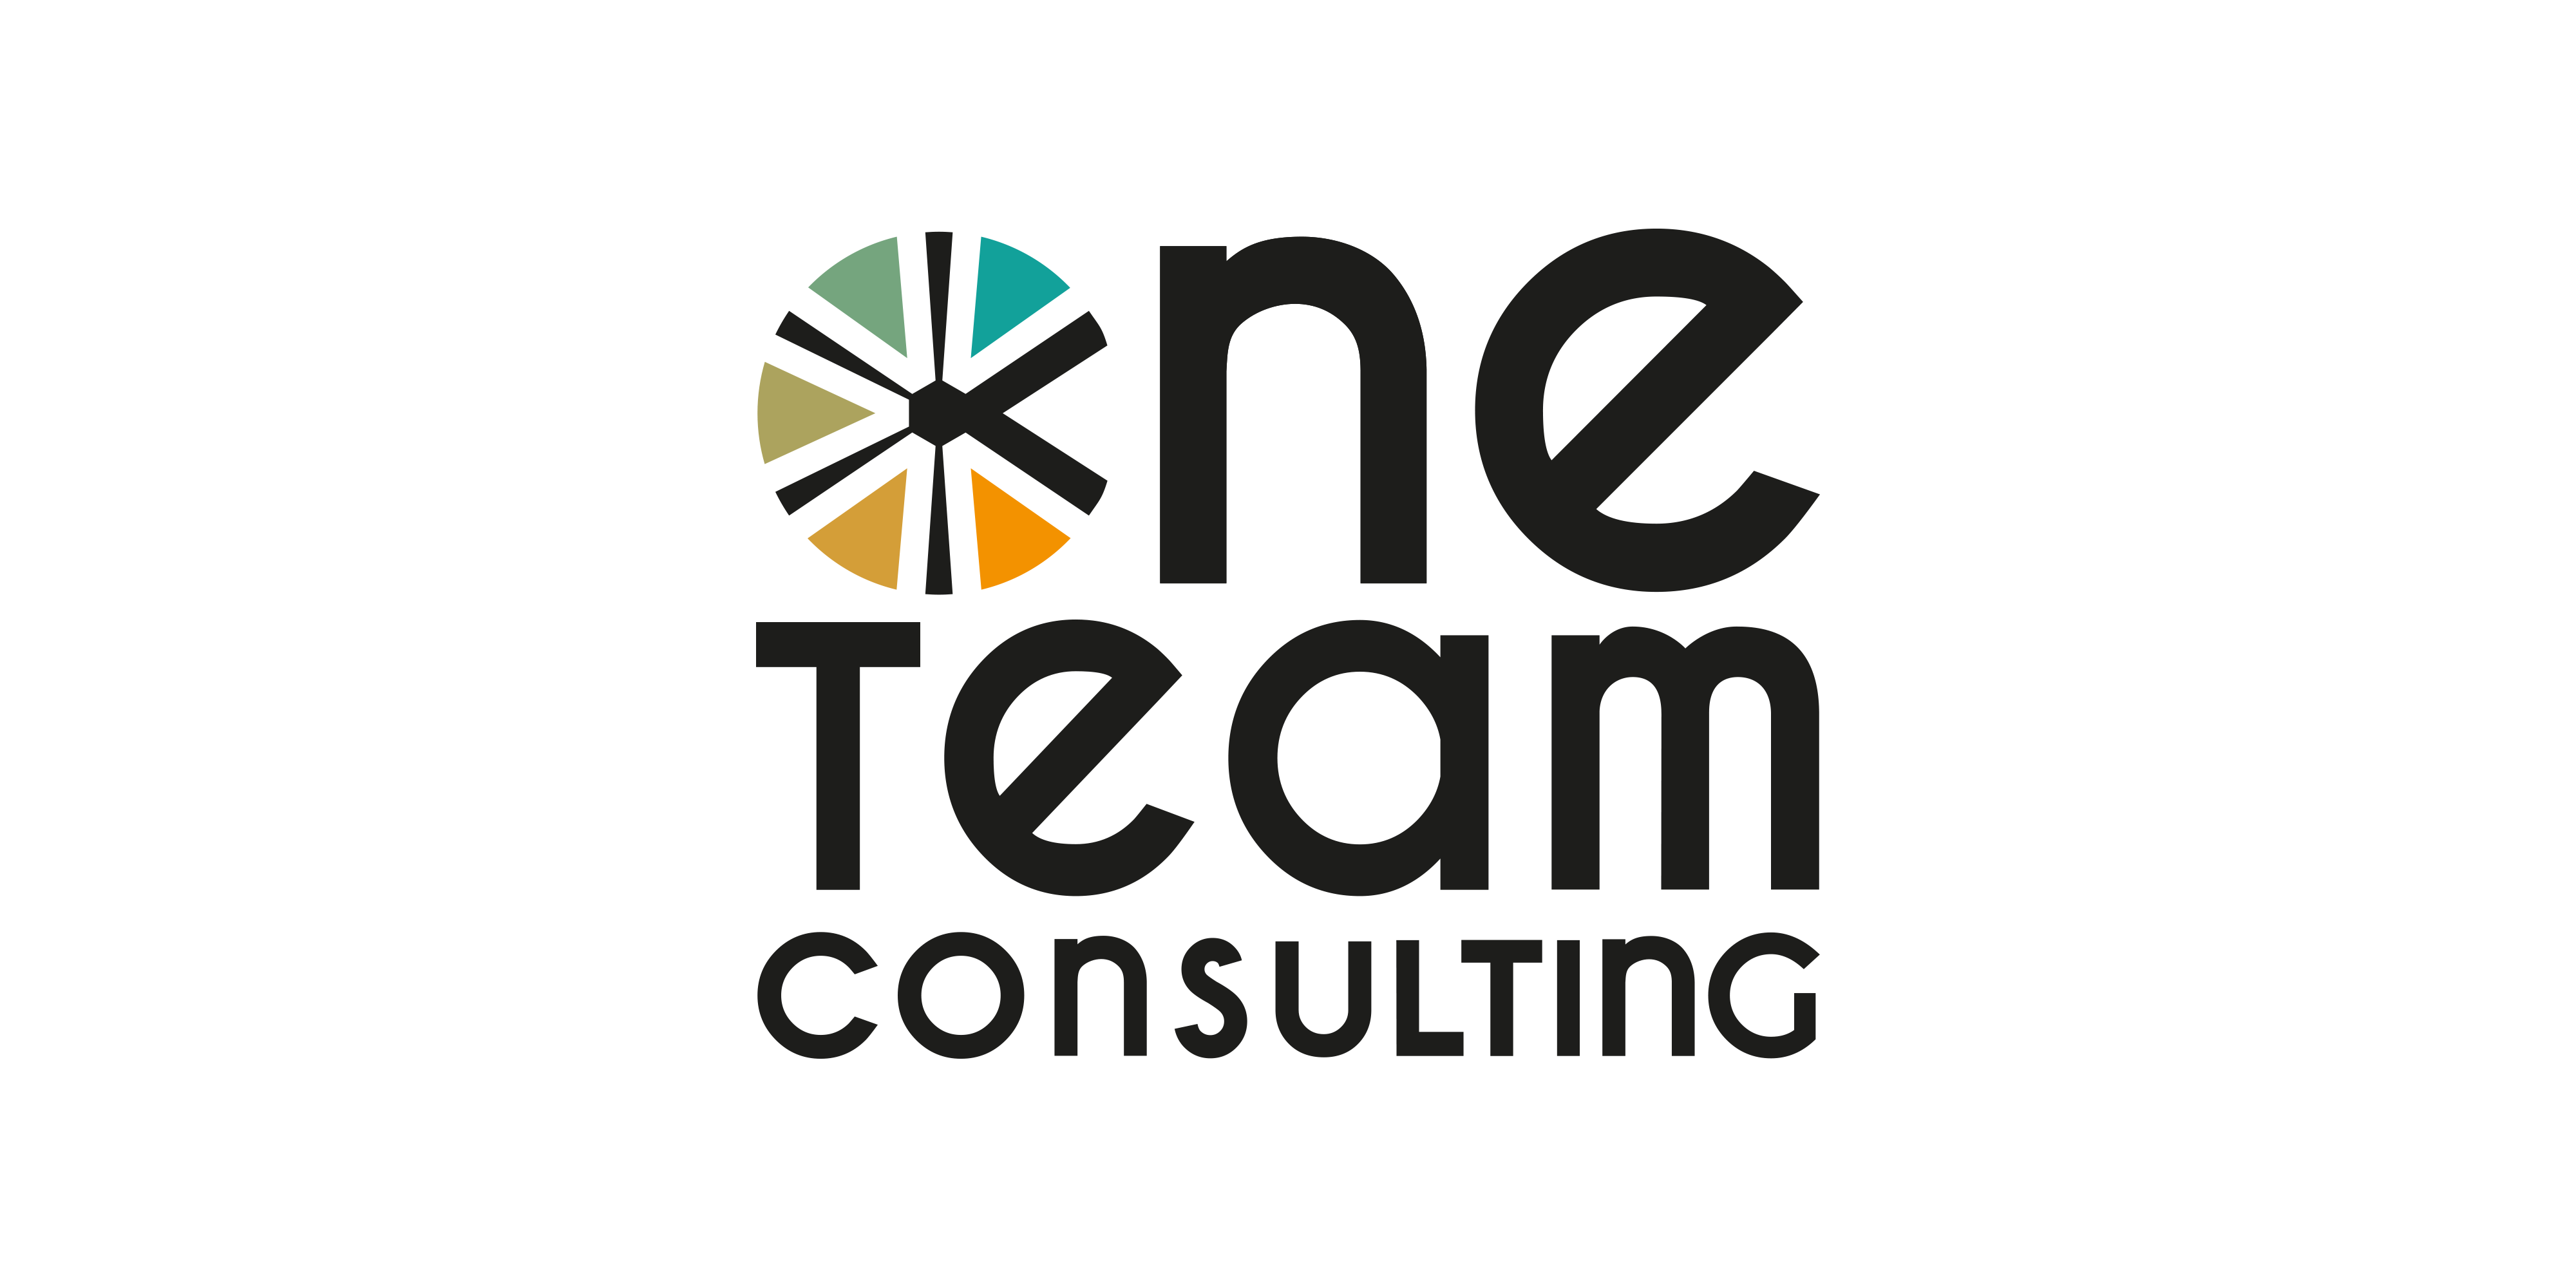 One Team Consulting